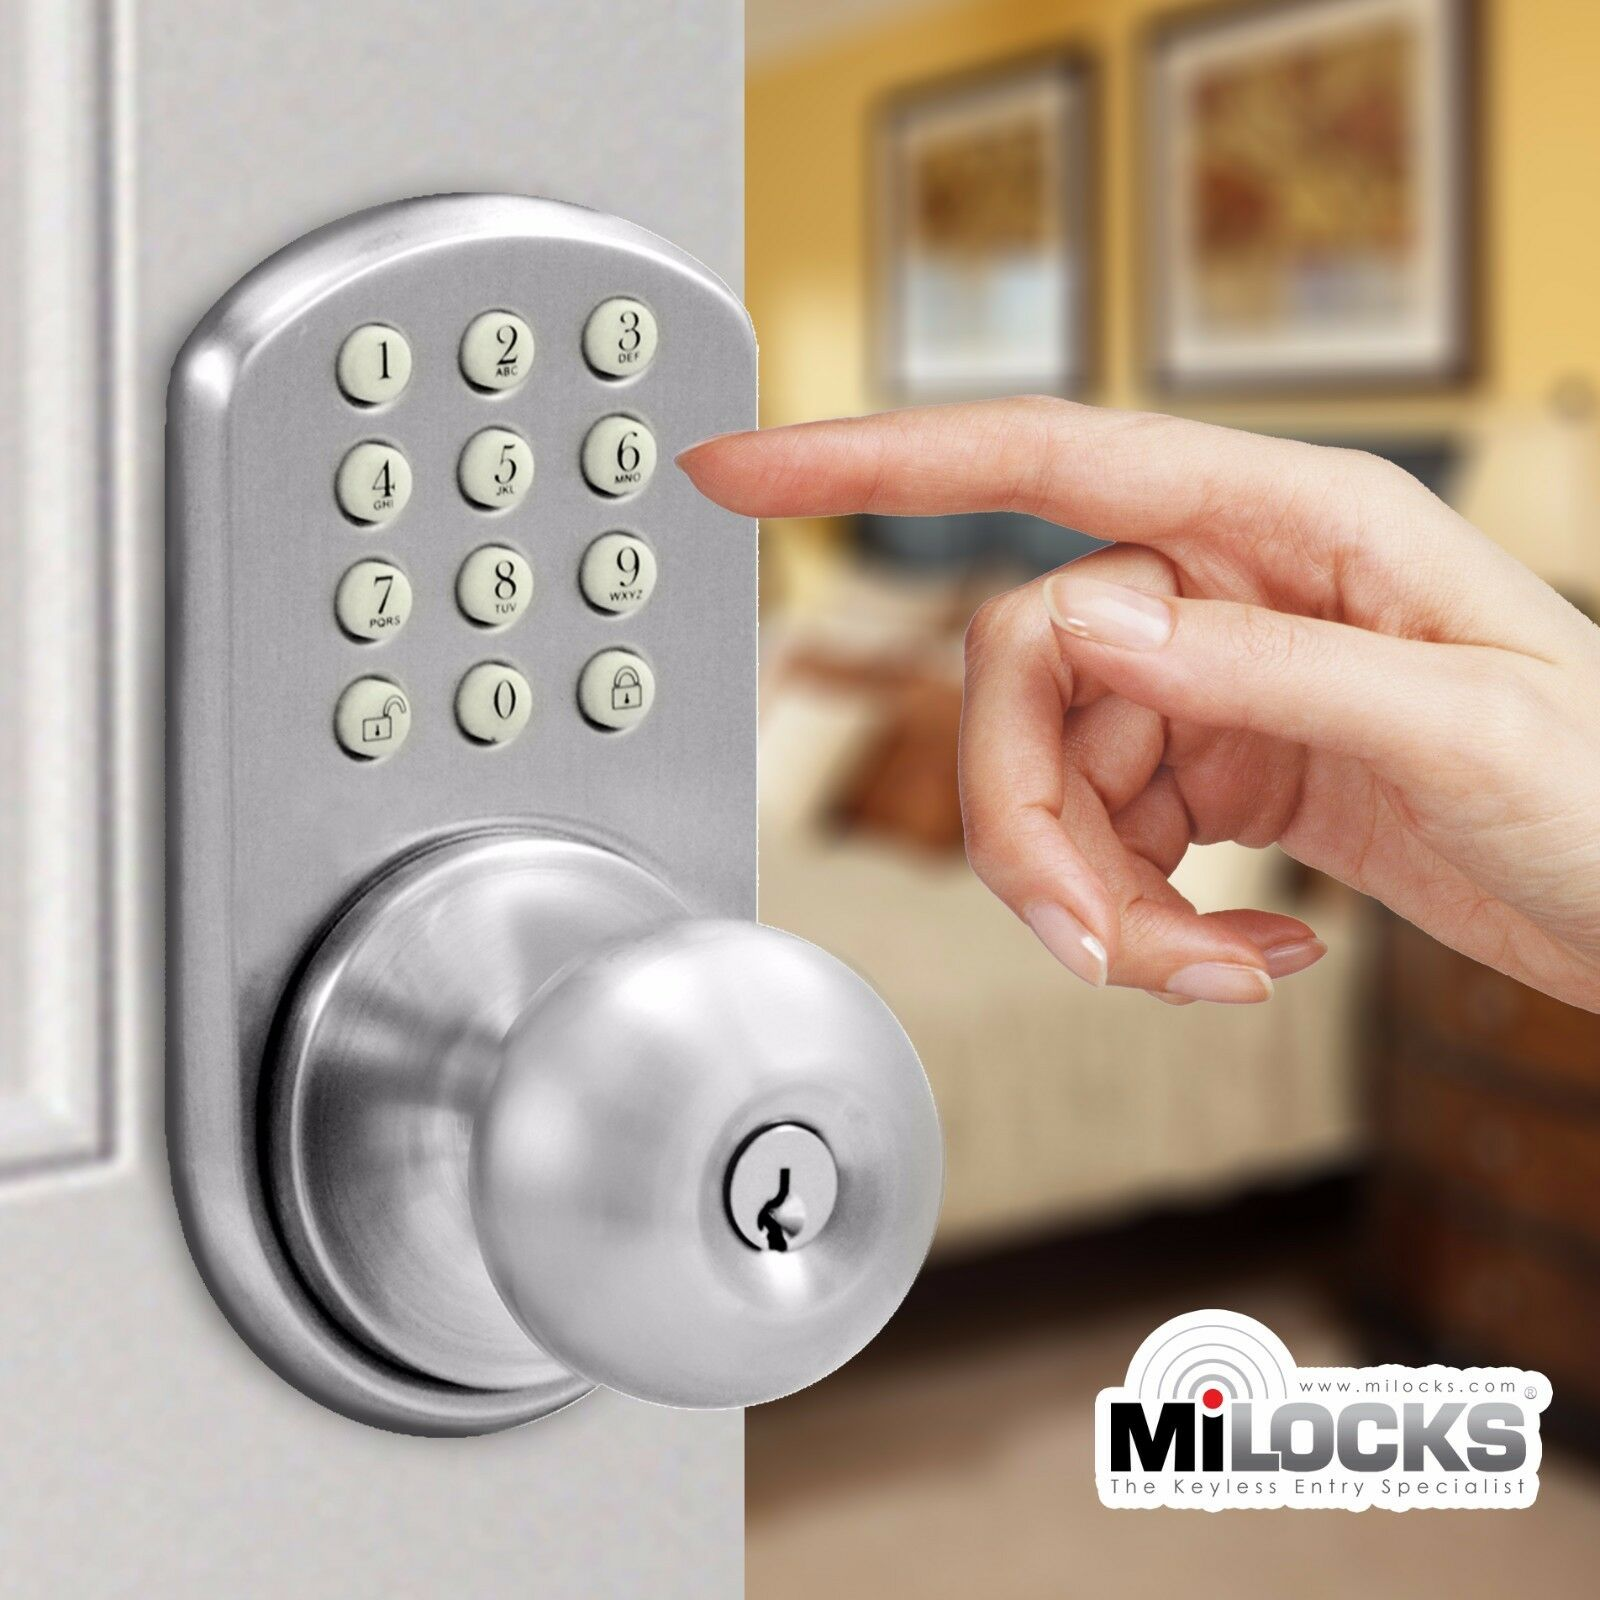 milocks electronic keyless entry touchpad keypad door knob lock